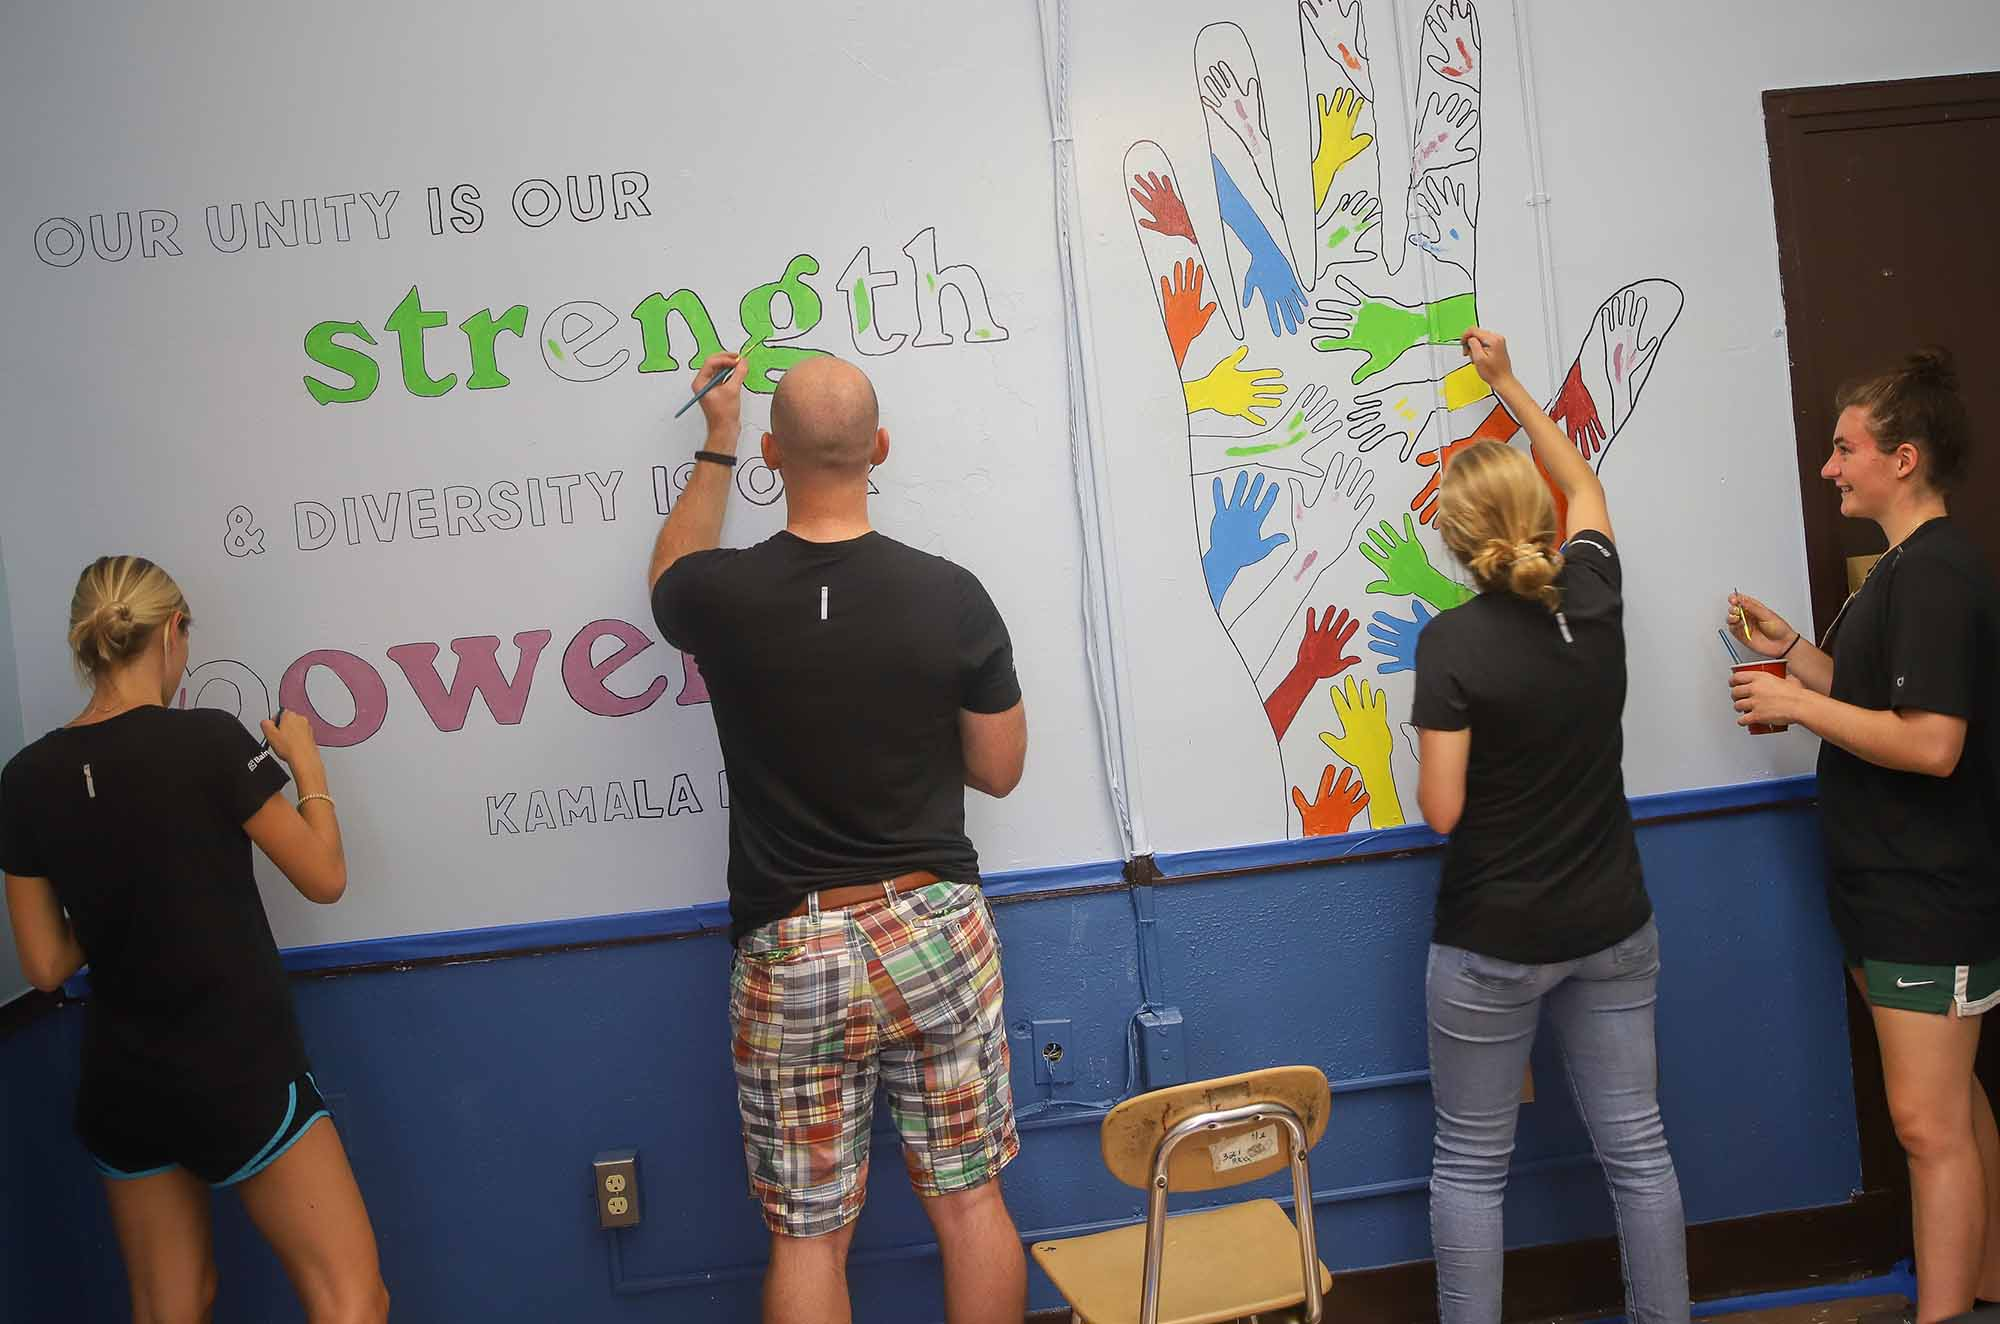 Bain Capital Credit Participates in Annual Service Day with City Year